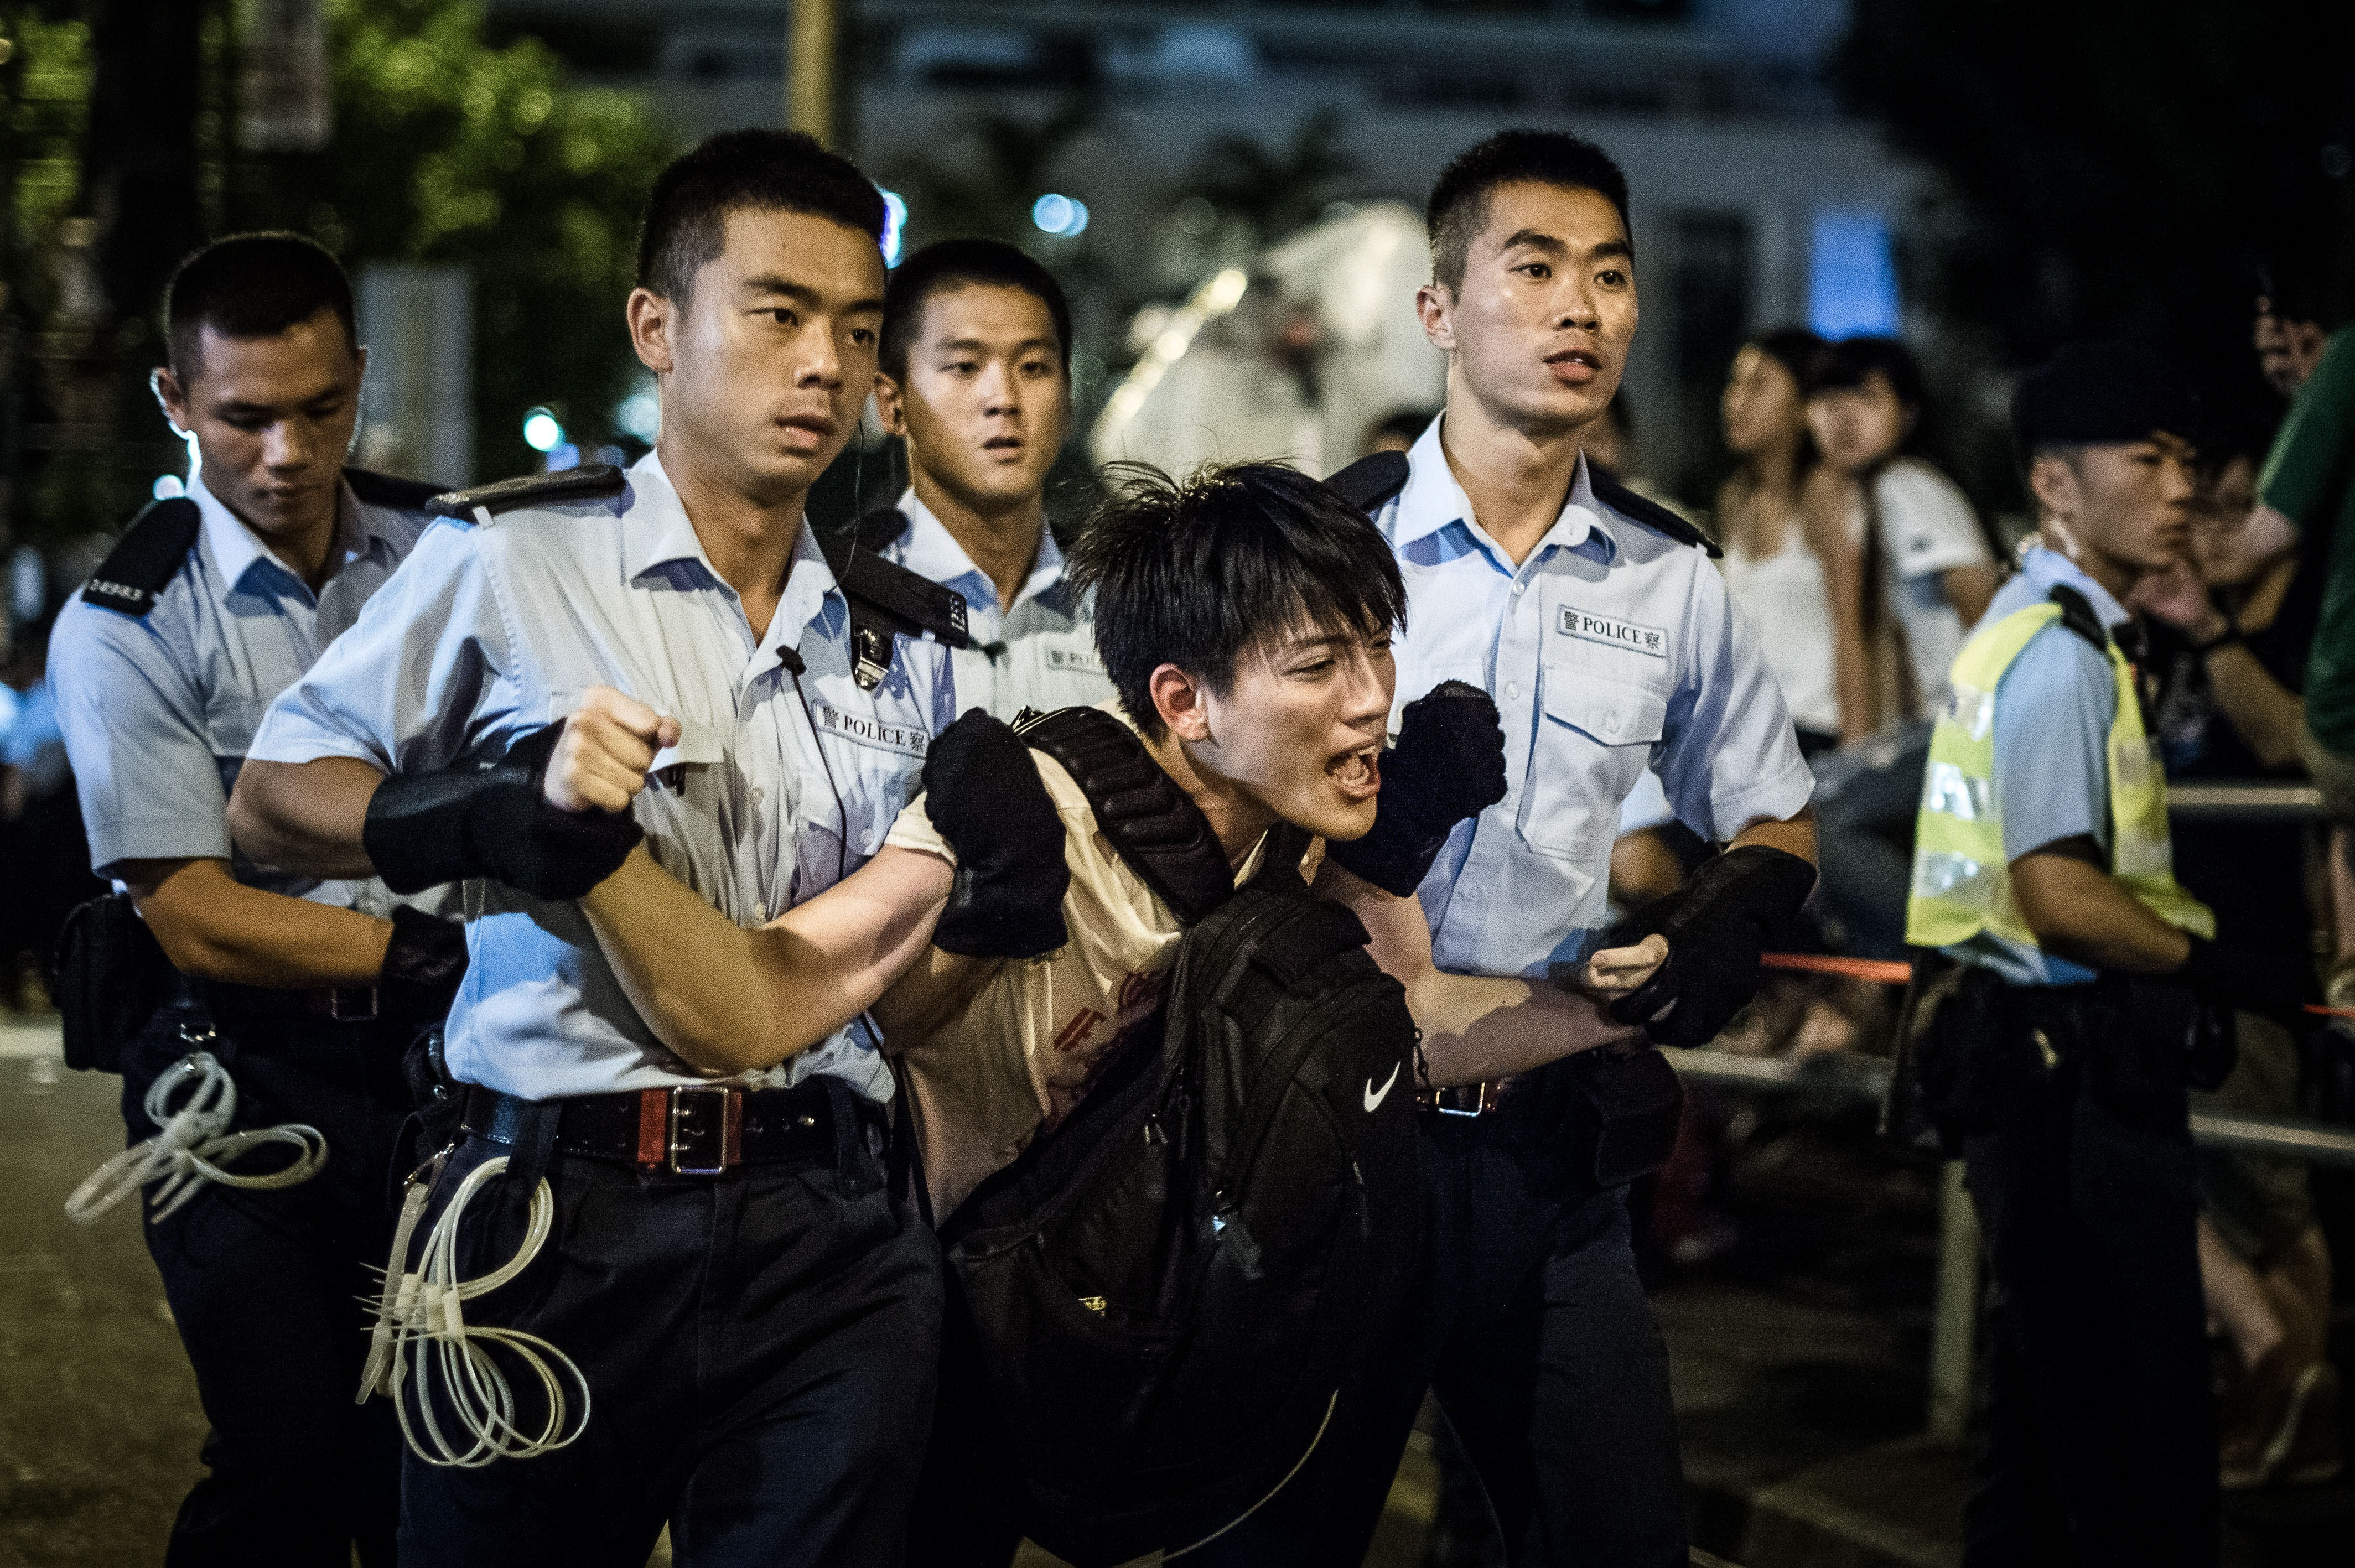 Violence And Other Threats Raise Press Freedom Fears In Hong Kong